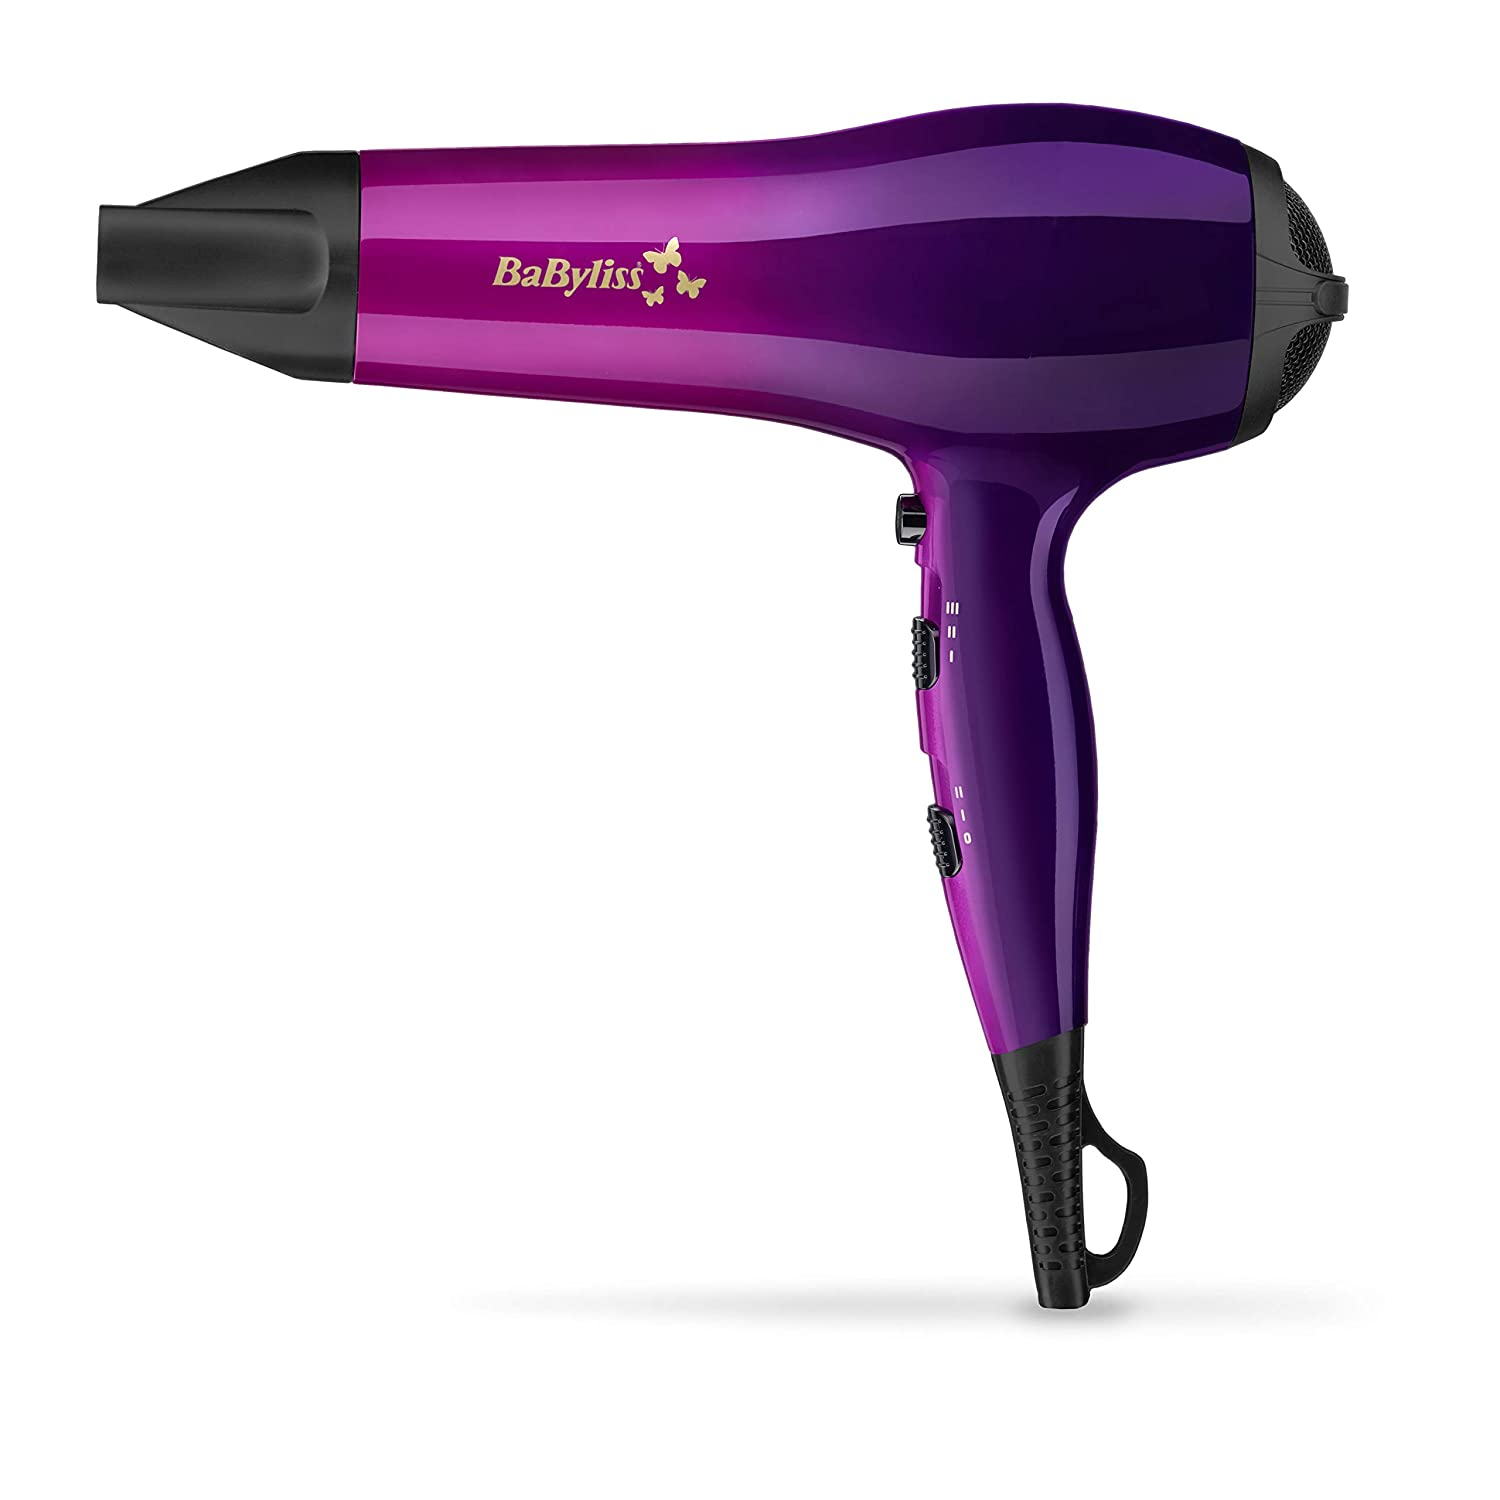 Babyliss 5737BU Ombre Hair Dryer The Conair Group ltd